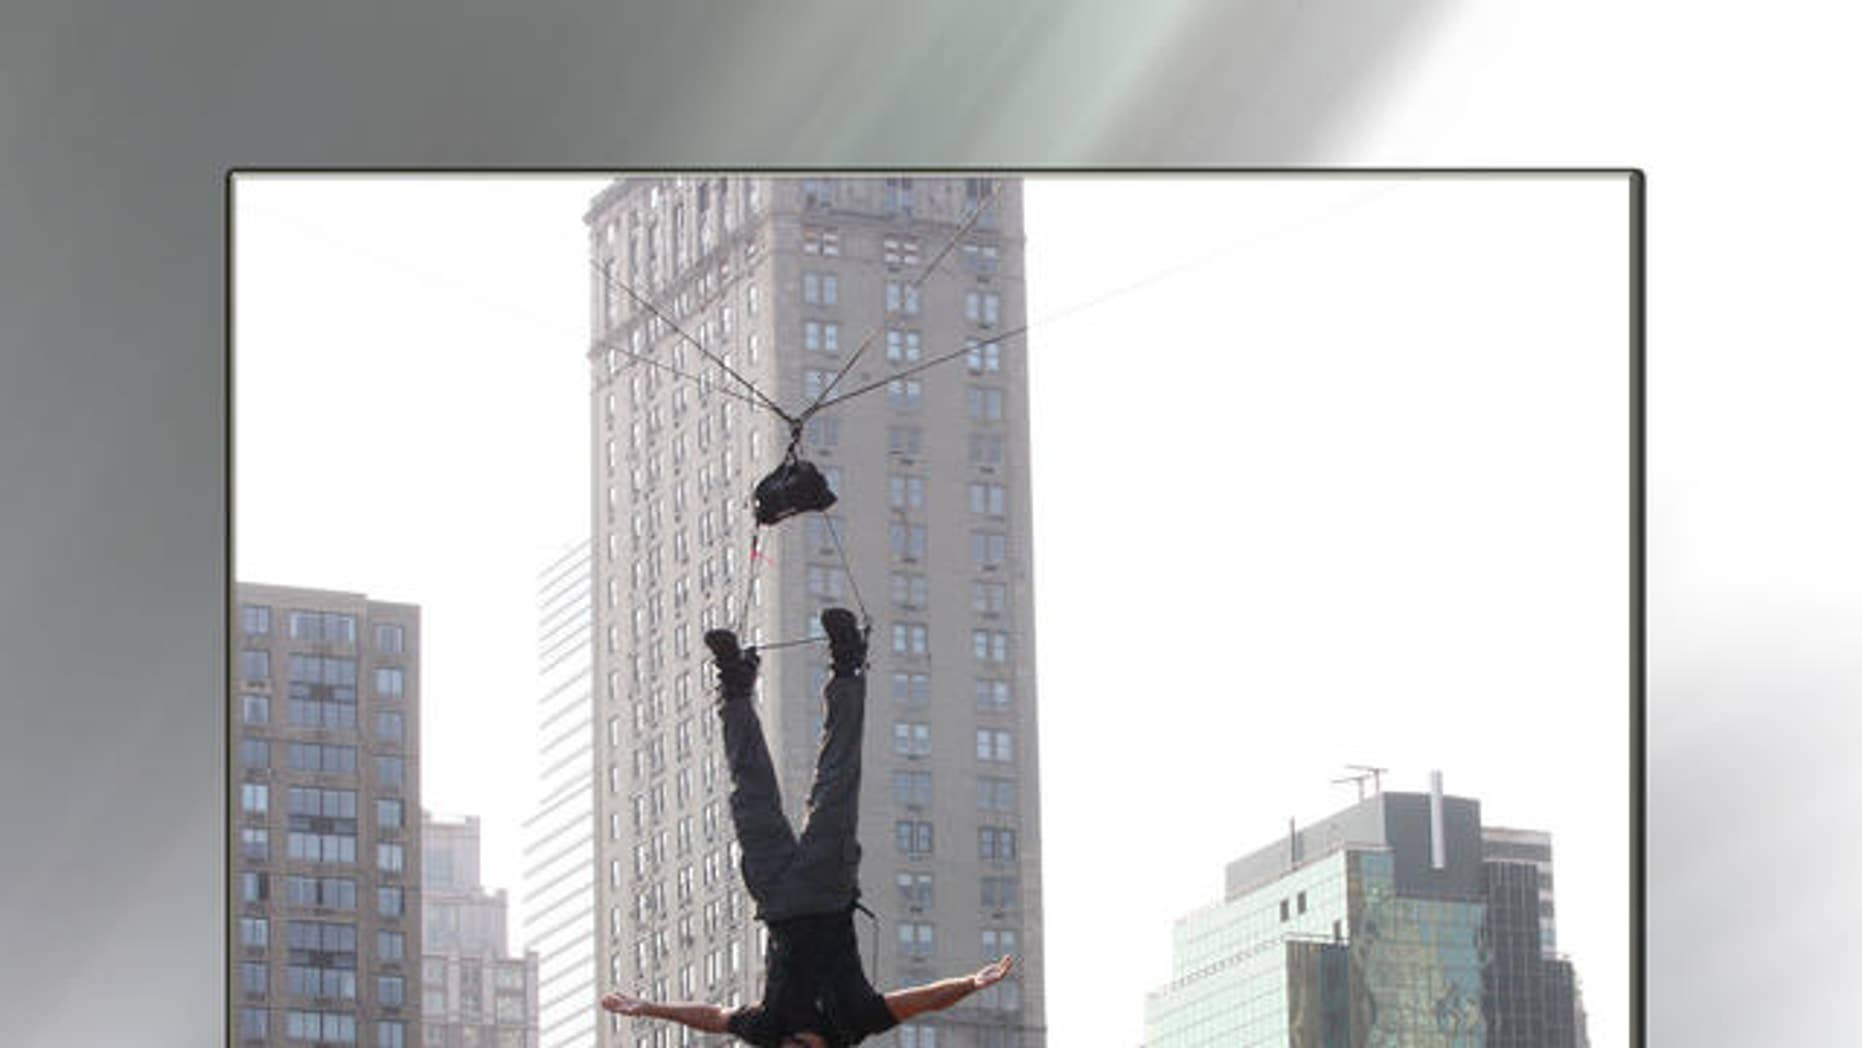 September 22, 2008 - FILE photo of David Blaine stunt hanging over Wollman Rink in New York's Central Park.